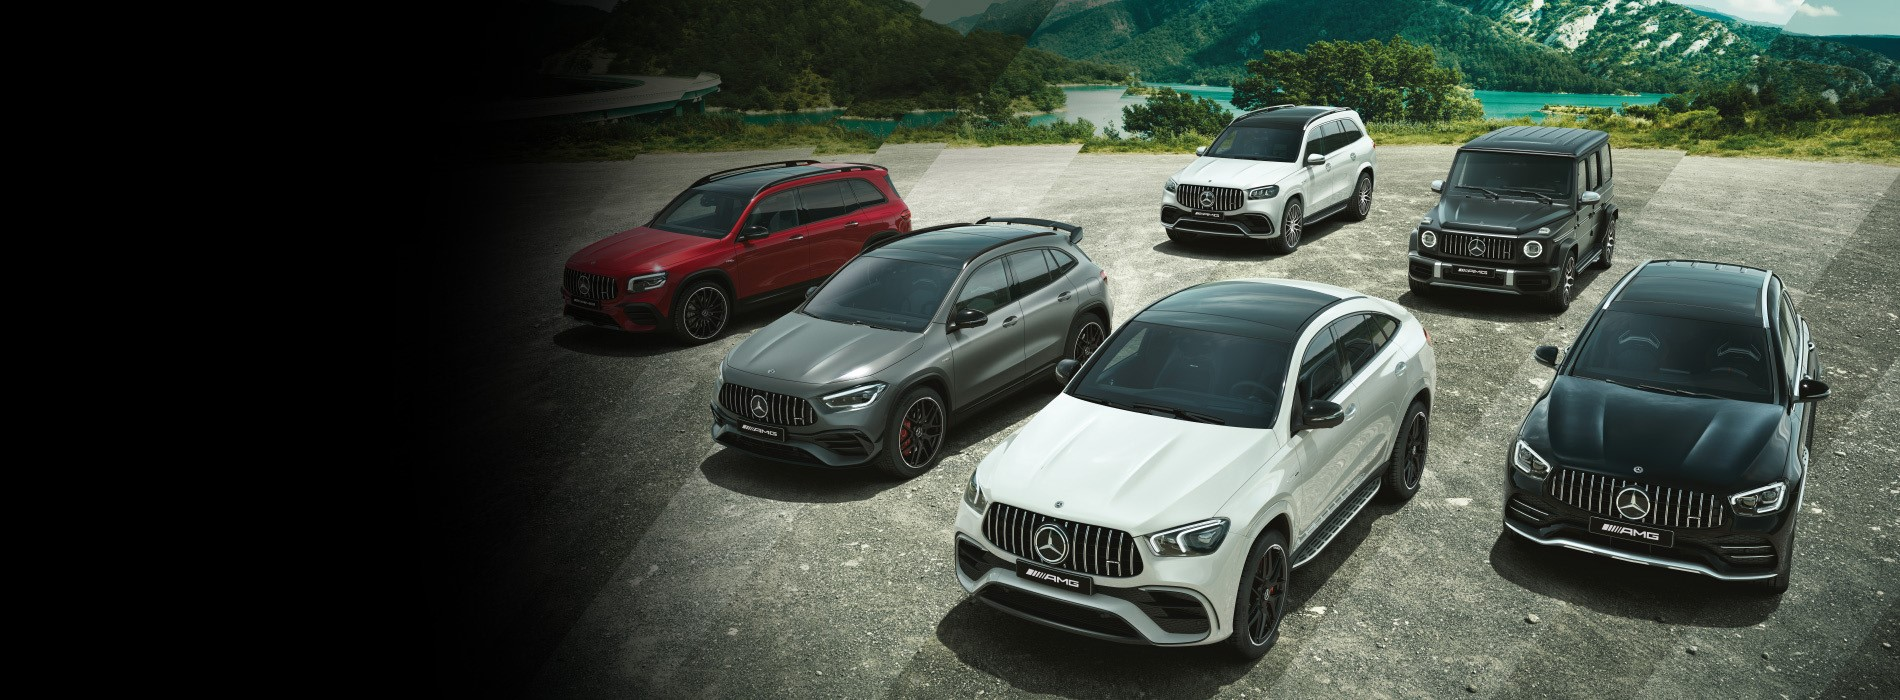 Mercedes-Benz AMG SUVs